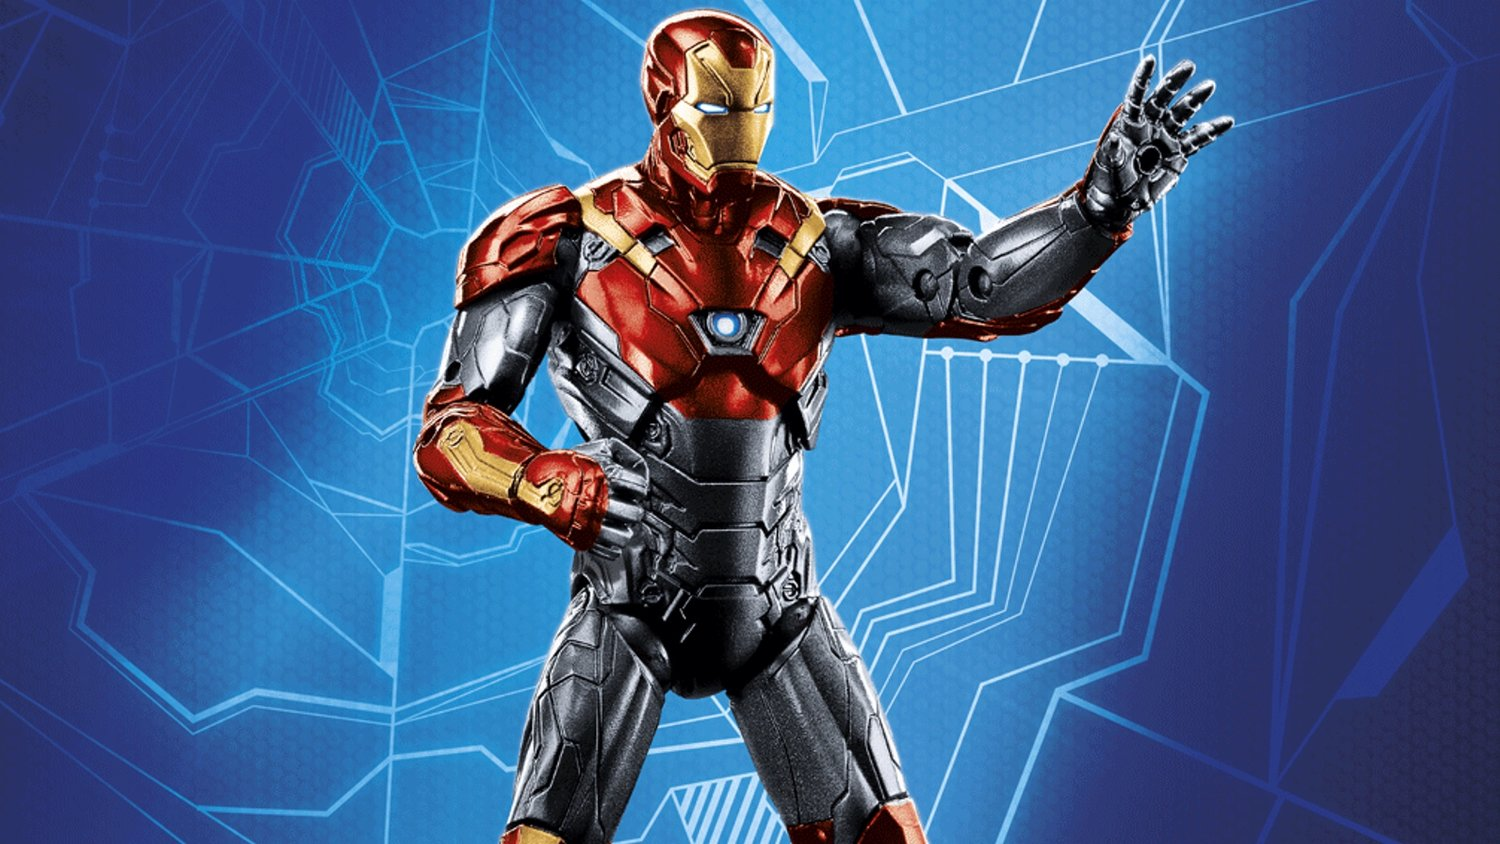 Tony Stark Is Getting Ultimate Iron Man-Inspired Armor in SPIDER-MAN: HOMECOMING